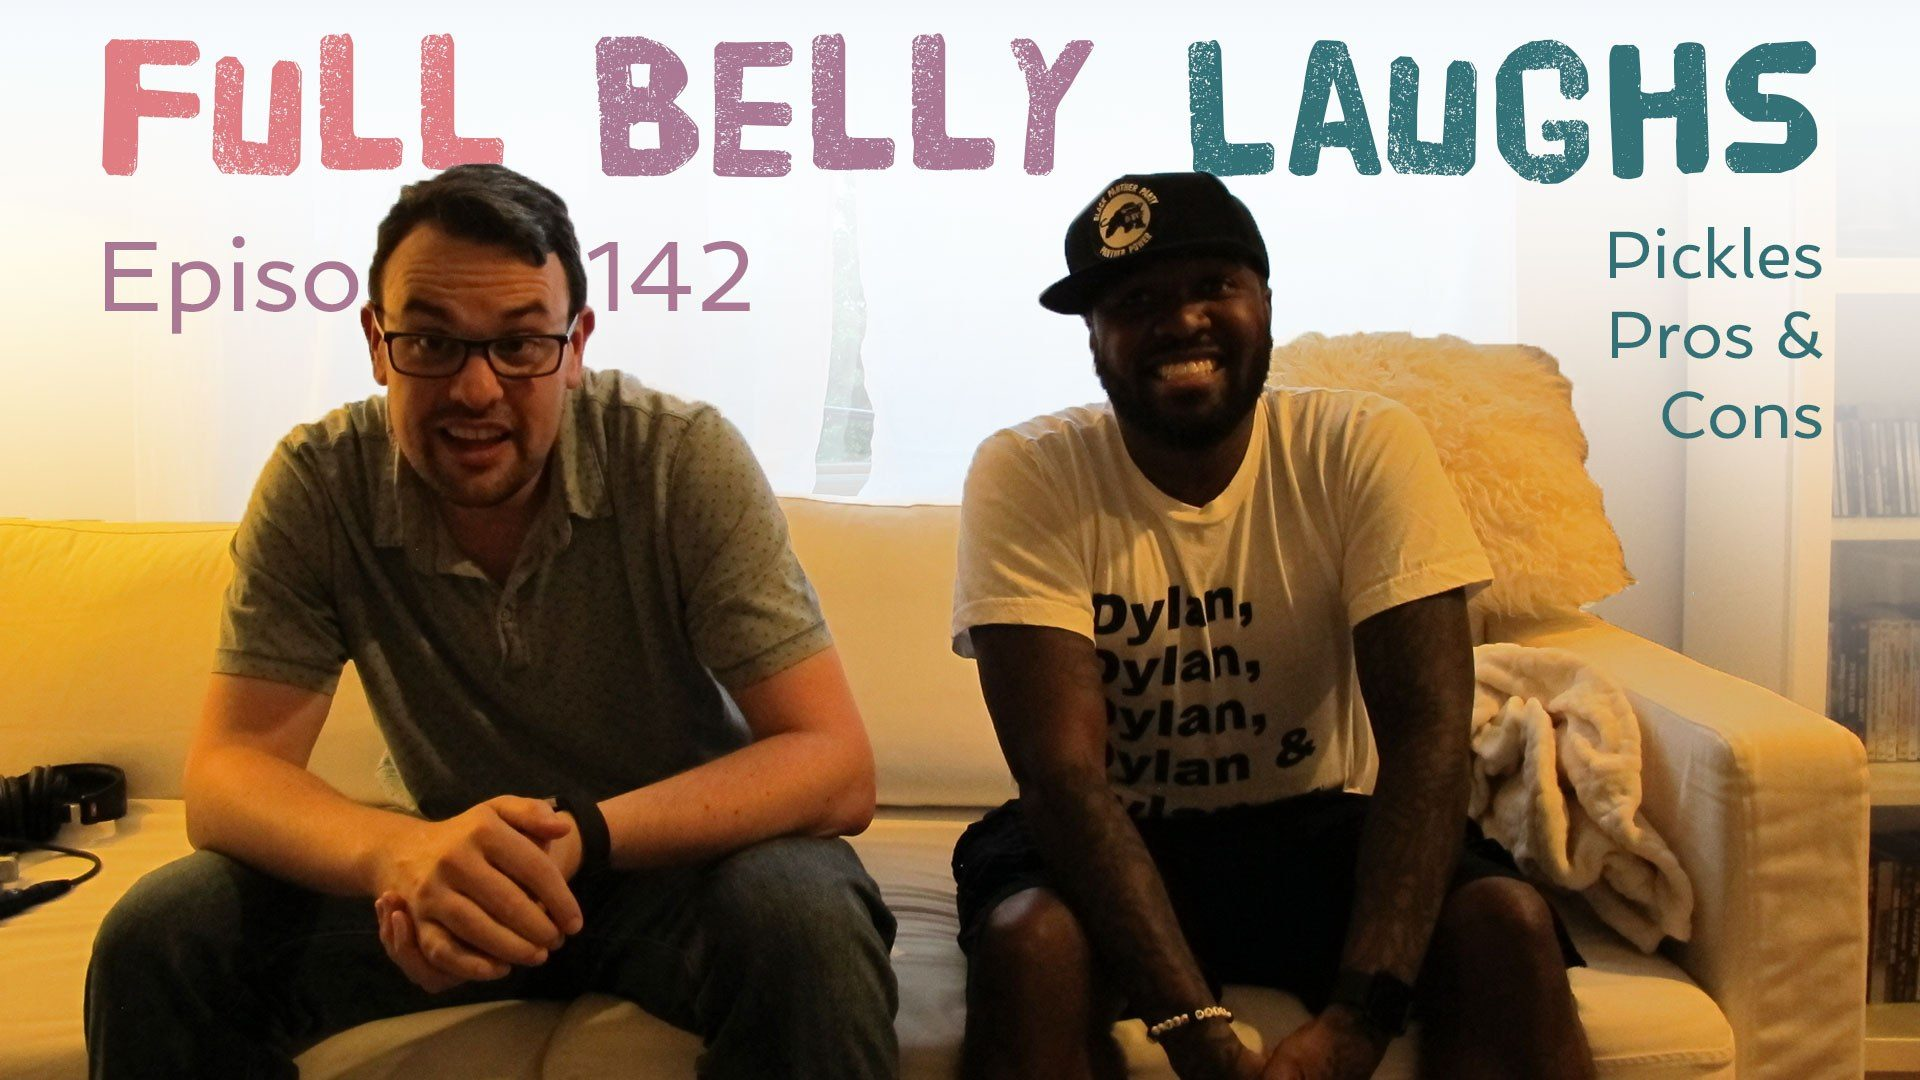 full belly laughs podcast episode 142 picks pros and cons audio artwork